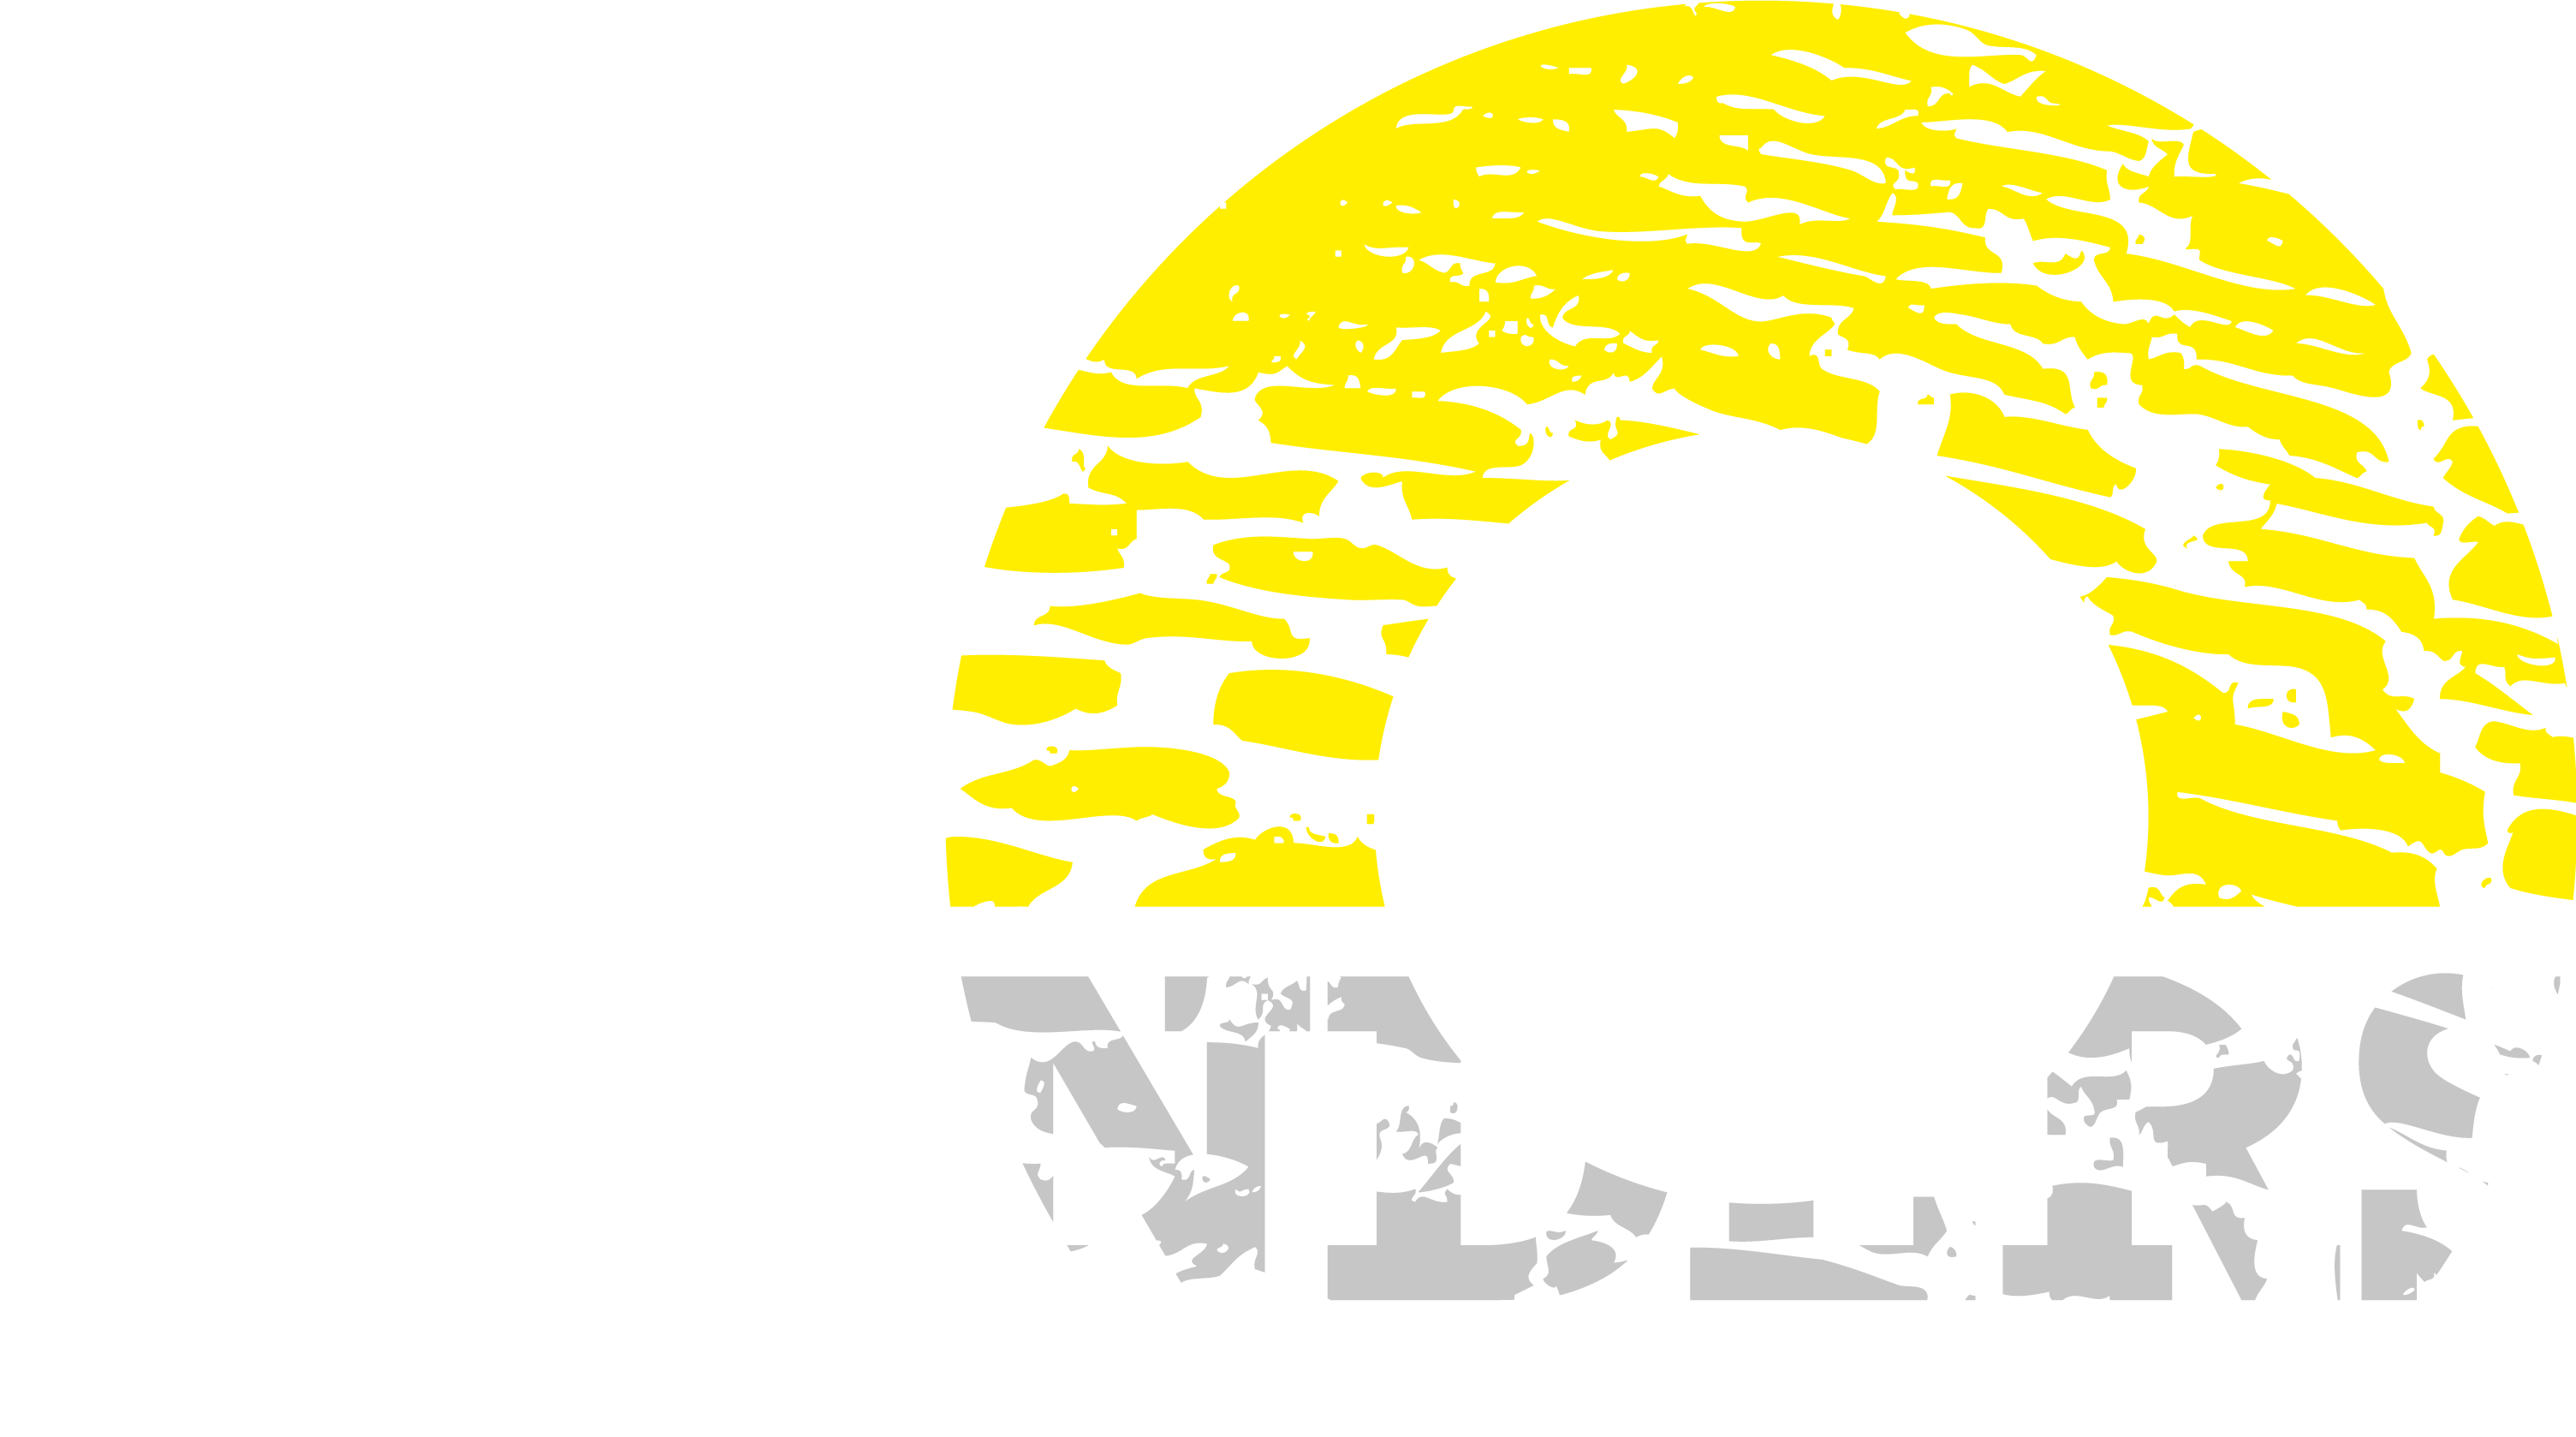 We Ride Flanders